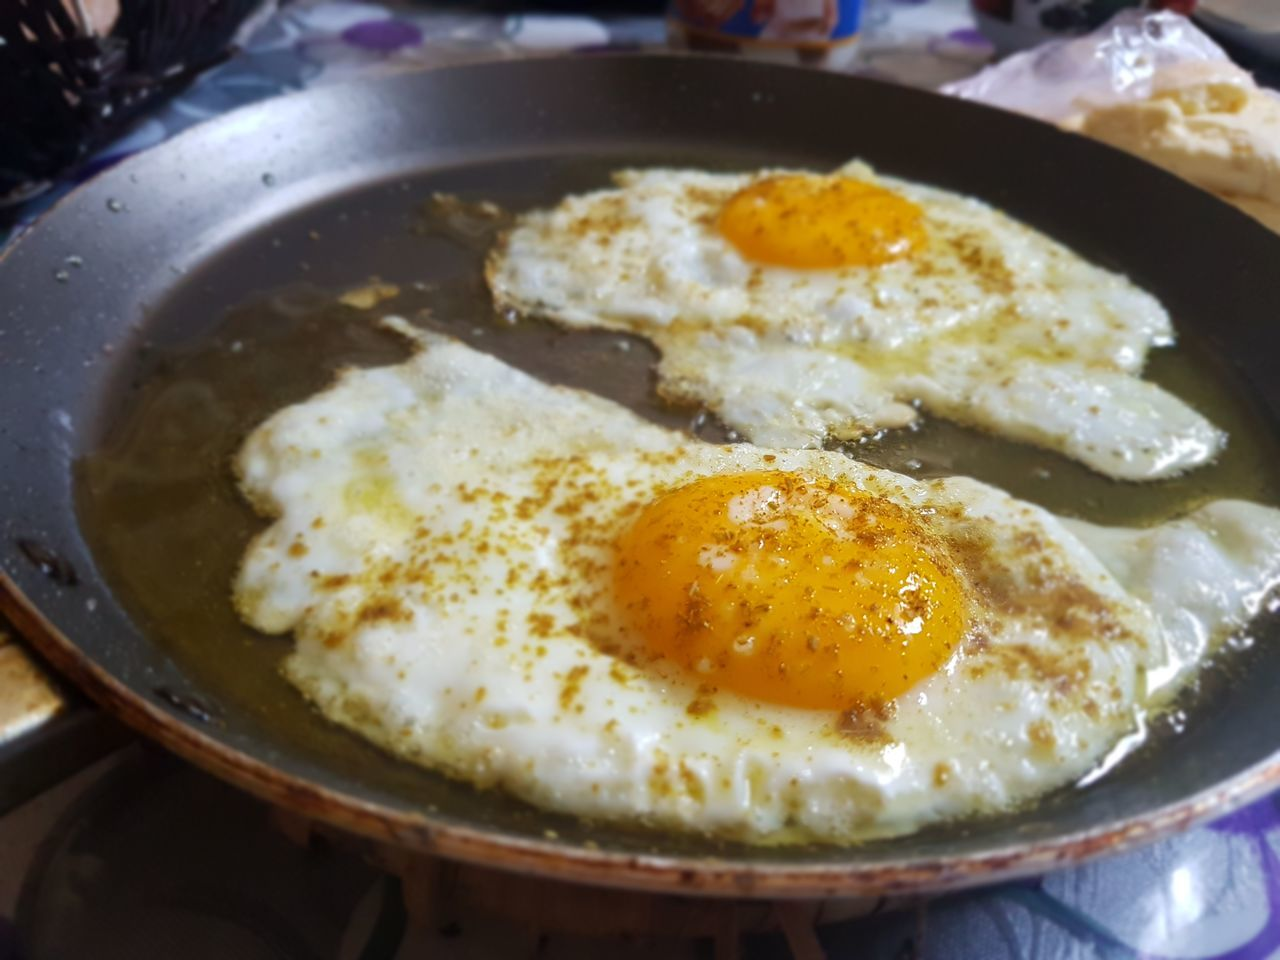 egg, food and drink, food, egg yolk, fried egg, breakfast, healthy eating, freshness, indoors, ready-to-eat, fried, no people, close-up, plate, omelet, meal, day